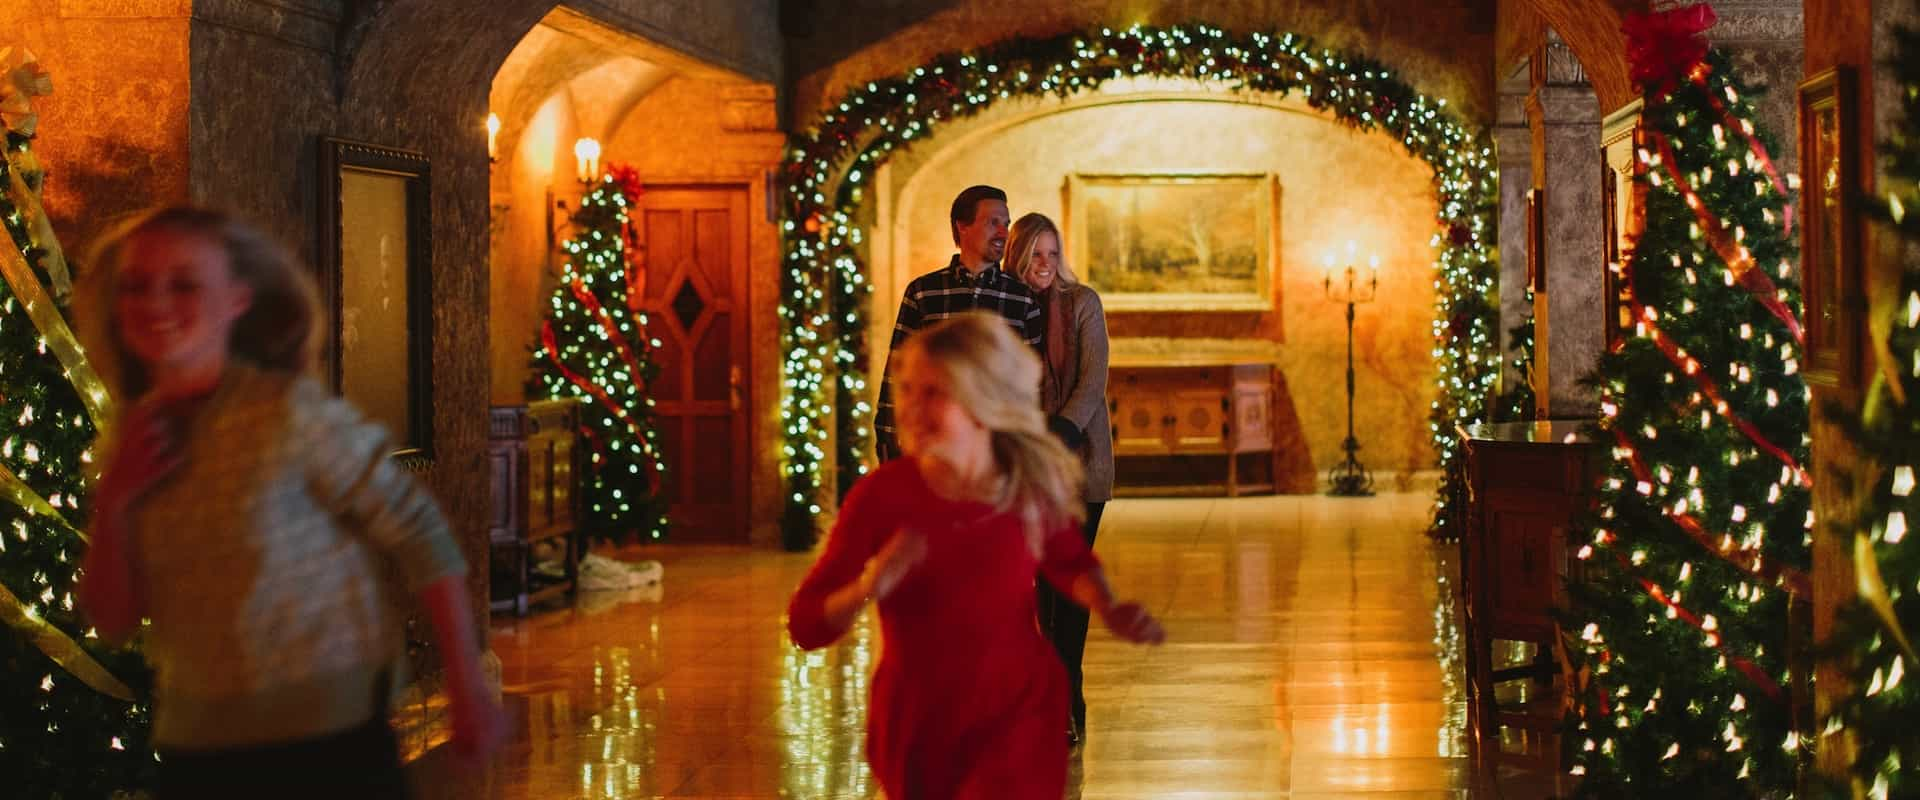 Celebrate Christmas at the Fairmont Banff Springs Hotel